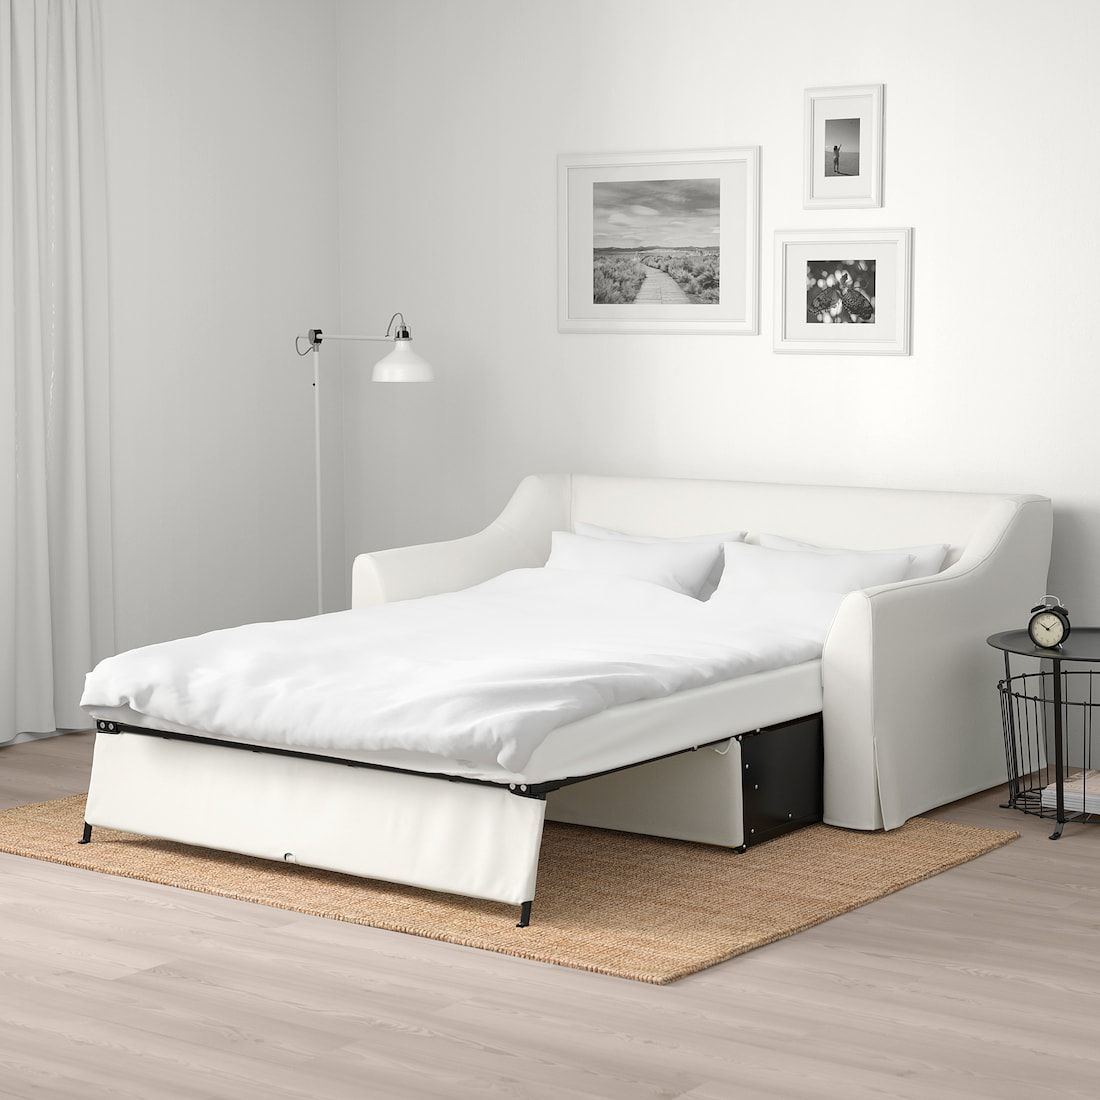 Farlov Sleeper Sofa Flodafors White In 2020 Sleeper Sofa Sofa Frame Ikea